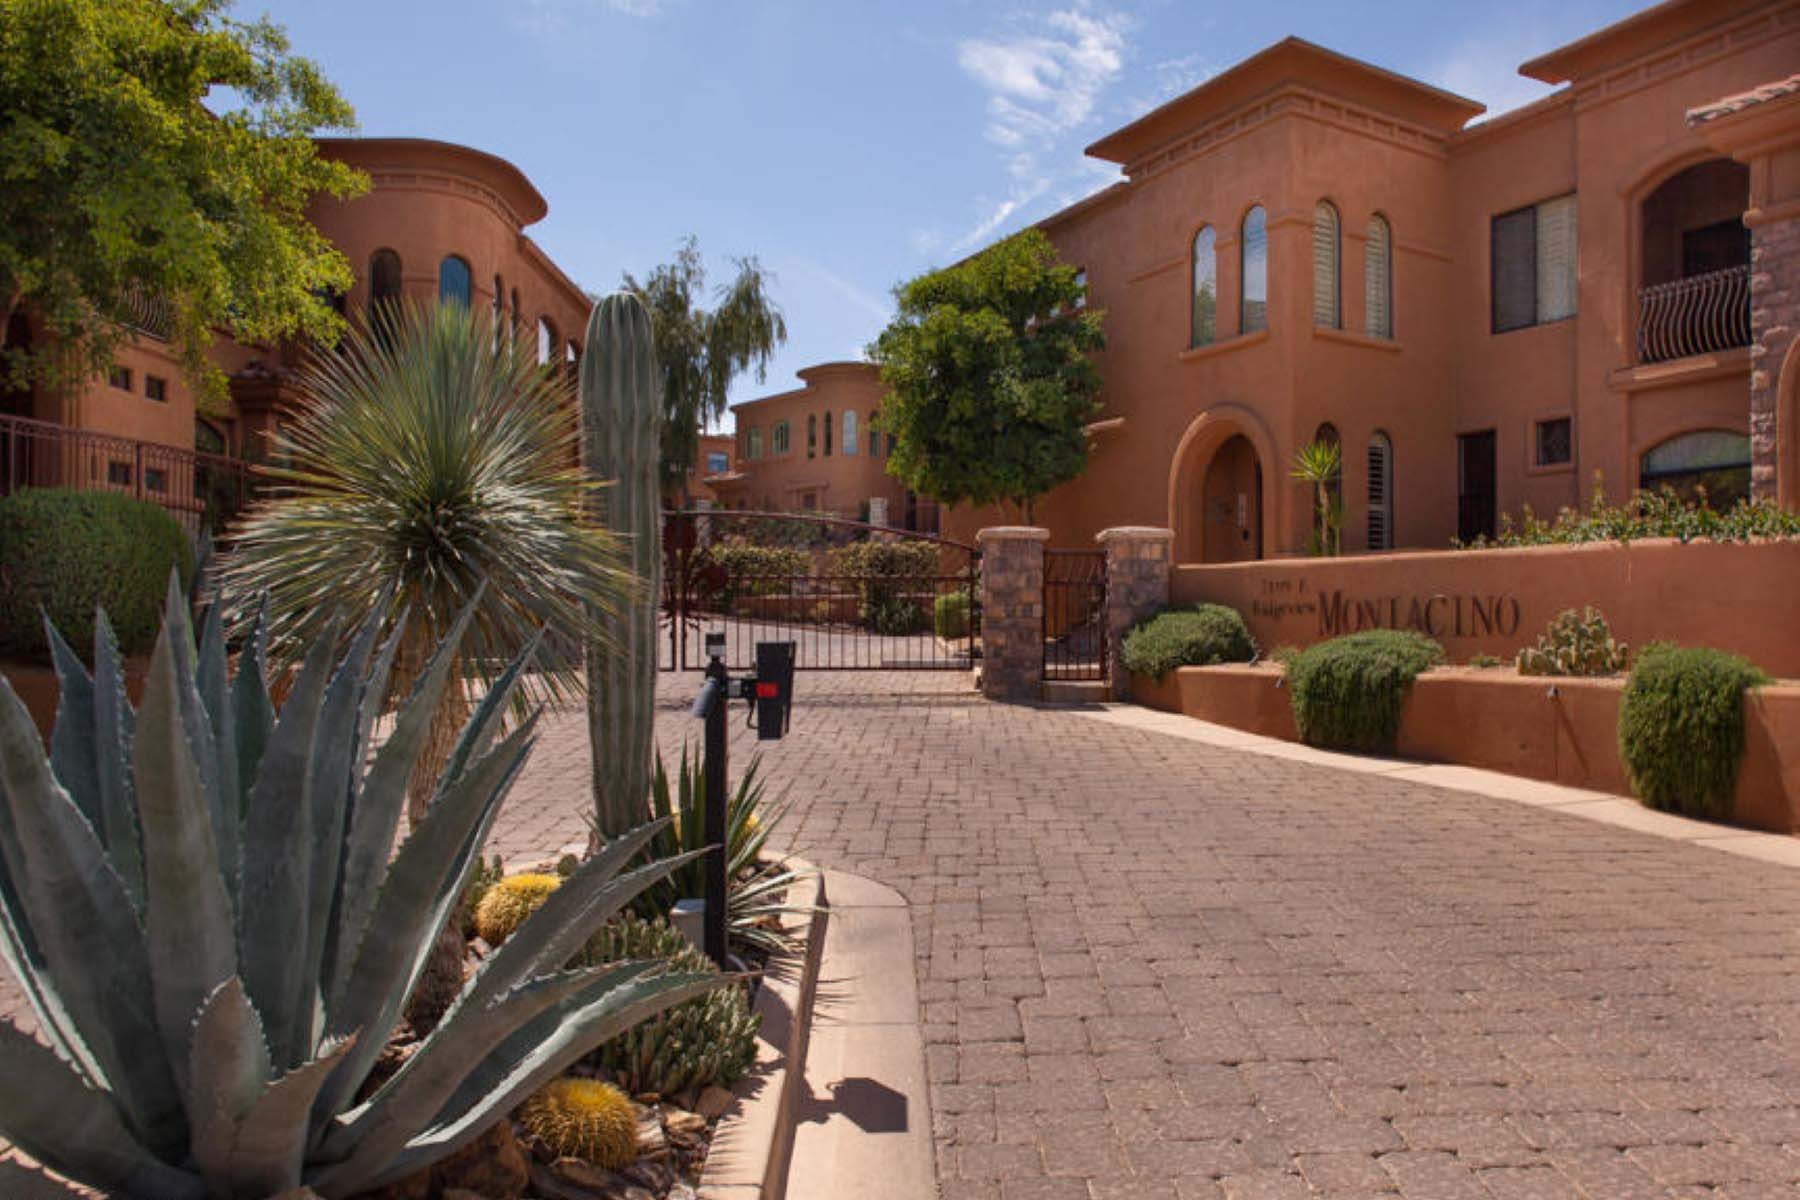 Apartment for Sale at Charming Carefree Condo beautifully furnished. 7199 E RIDGEVIEW PL 120 Carefree, Arizona 85377 United States